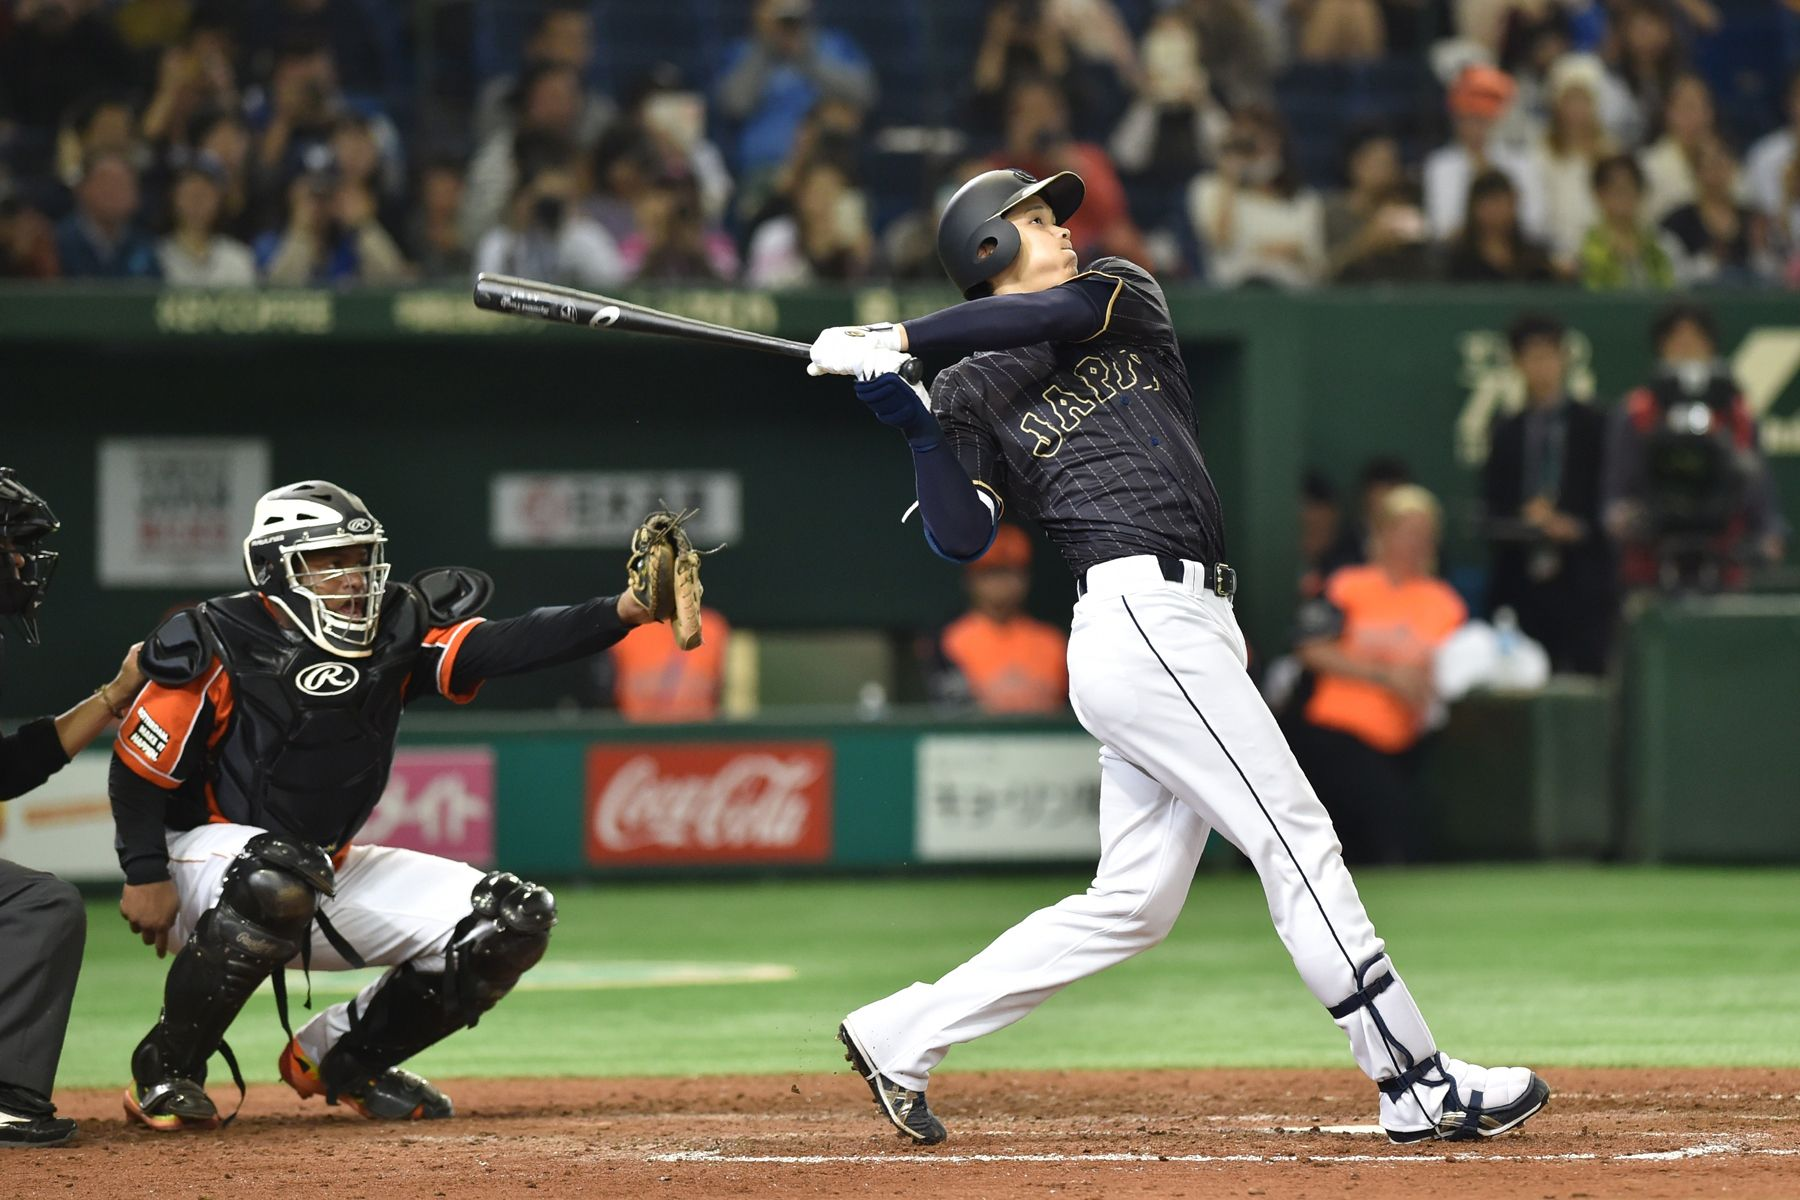 Japan S Babe Ruth Throws 100mph Fastballs And Hits Home Runs Out Of Stadiums Literally